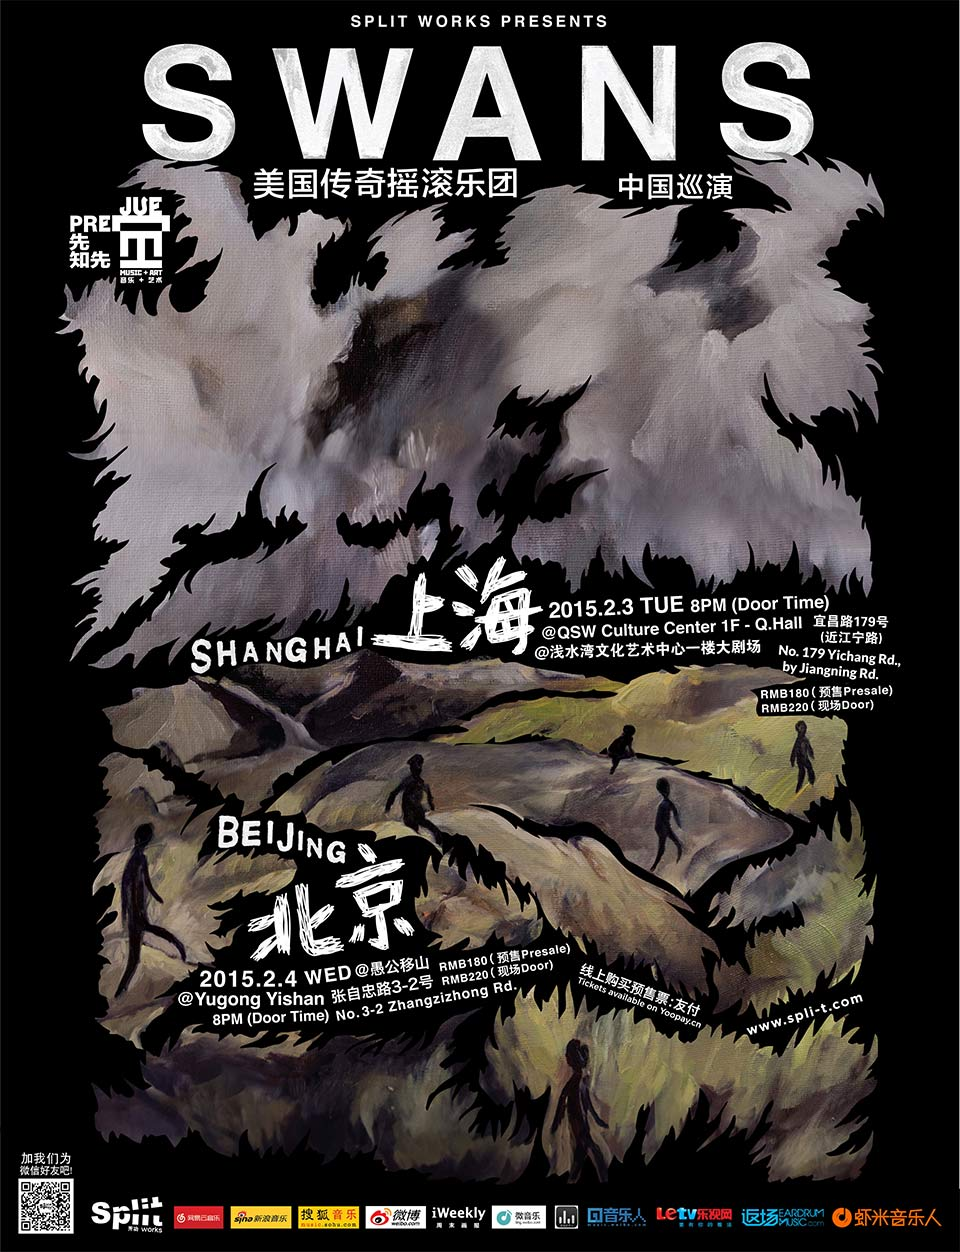 swans-china-tour-2015-poster-new